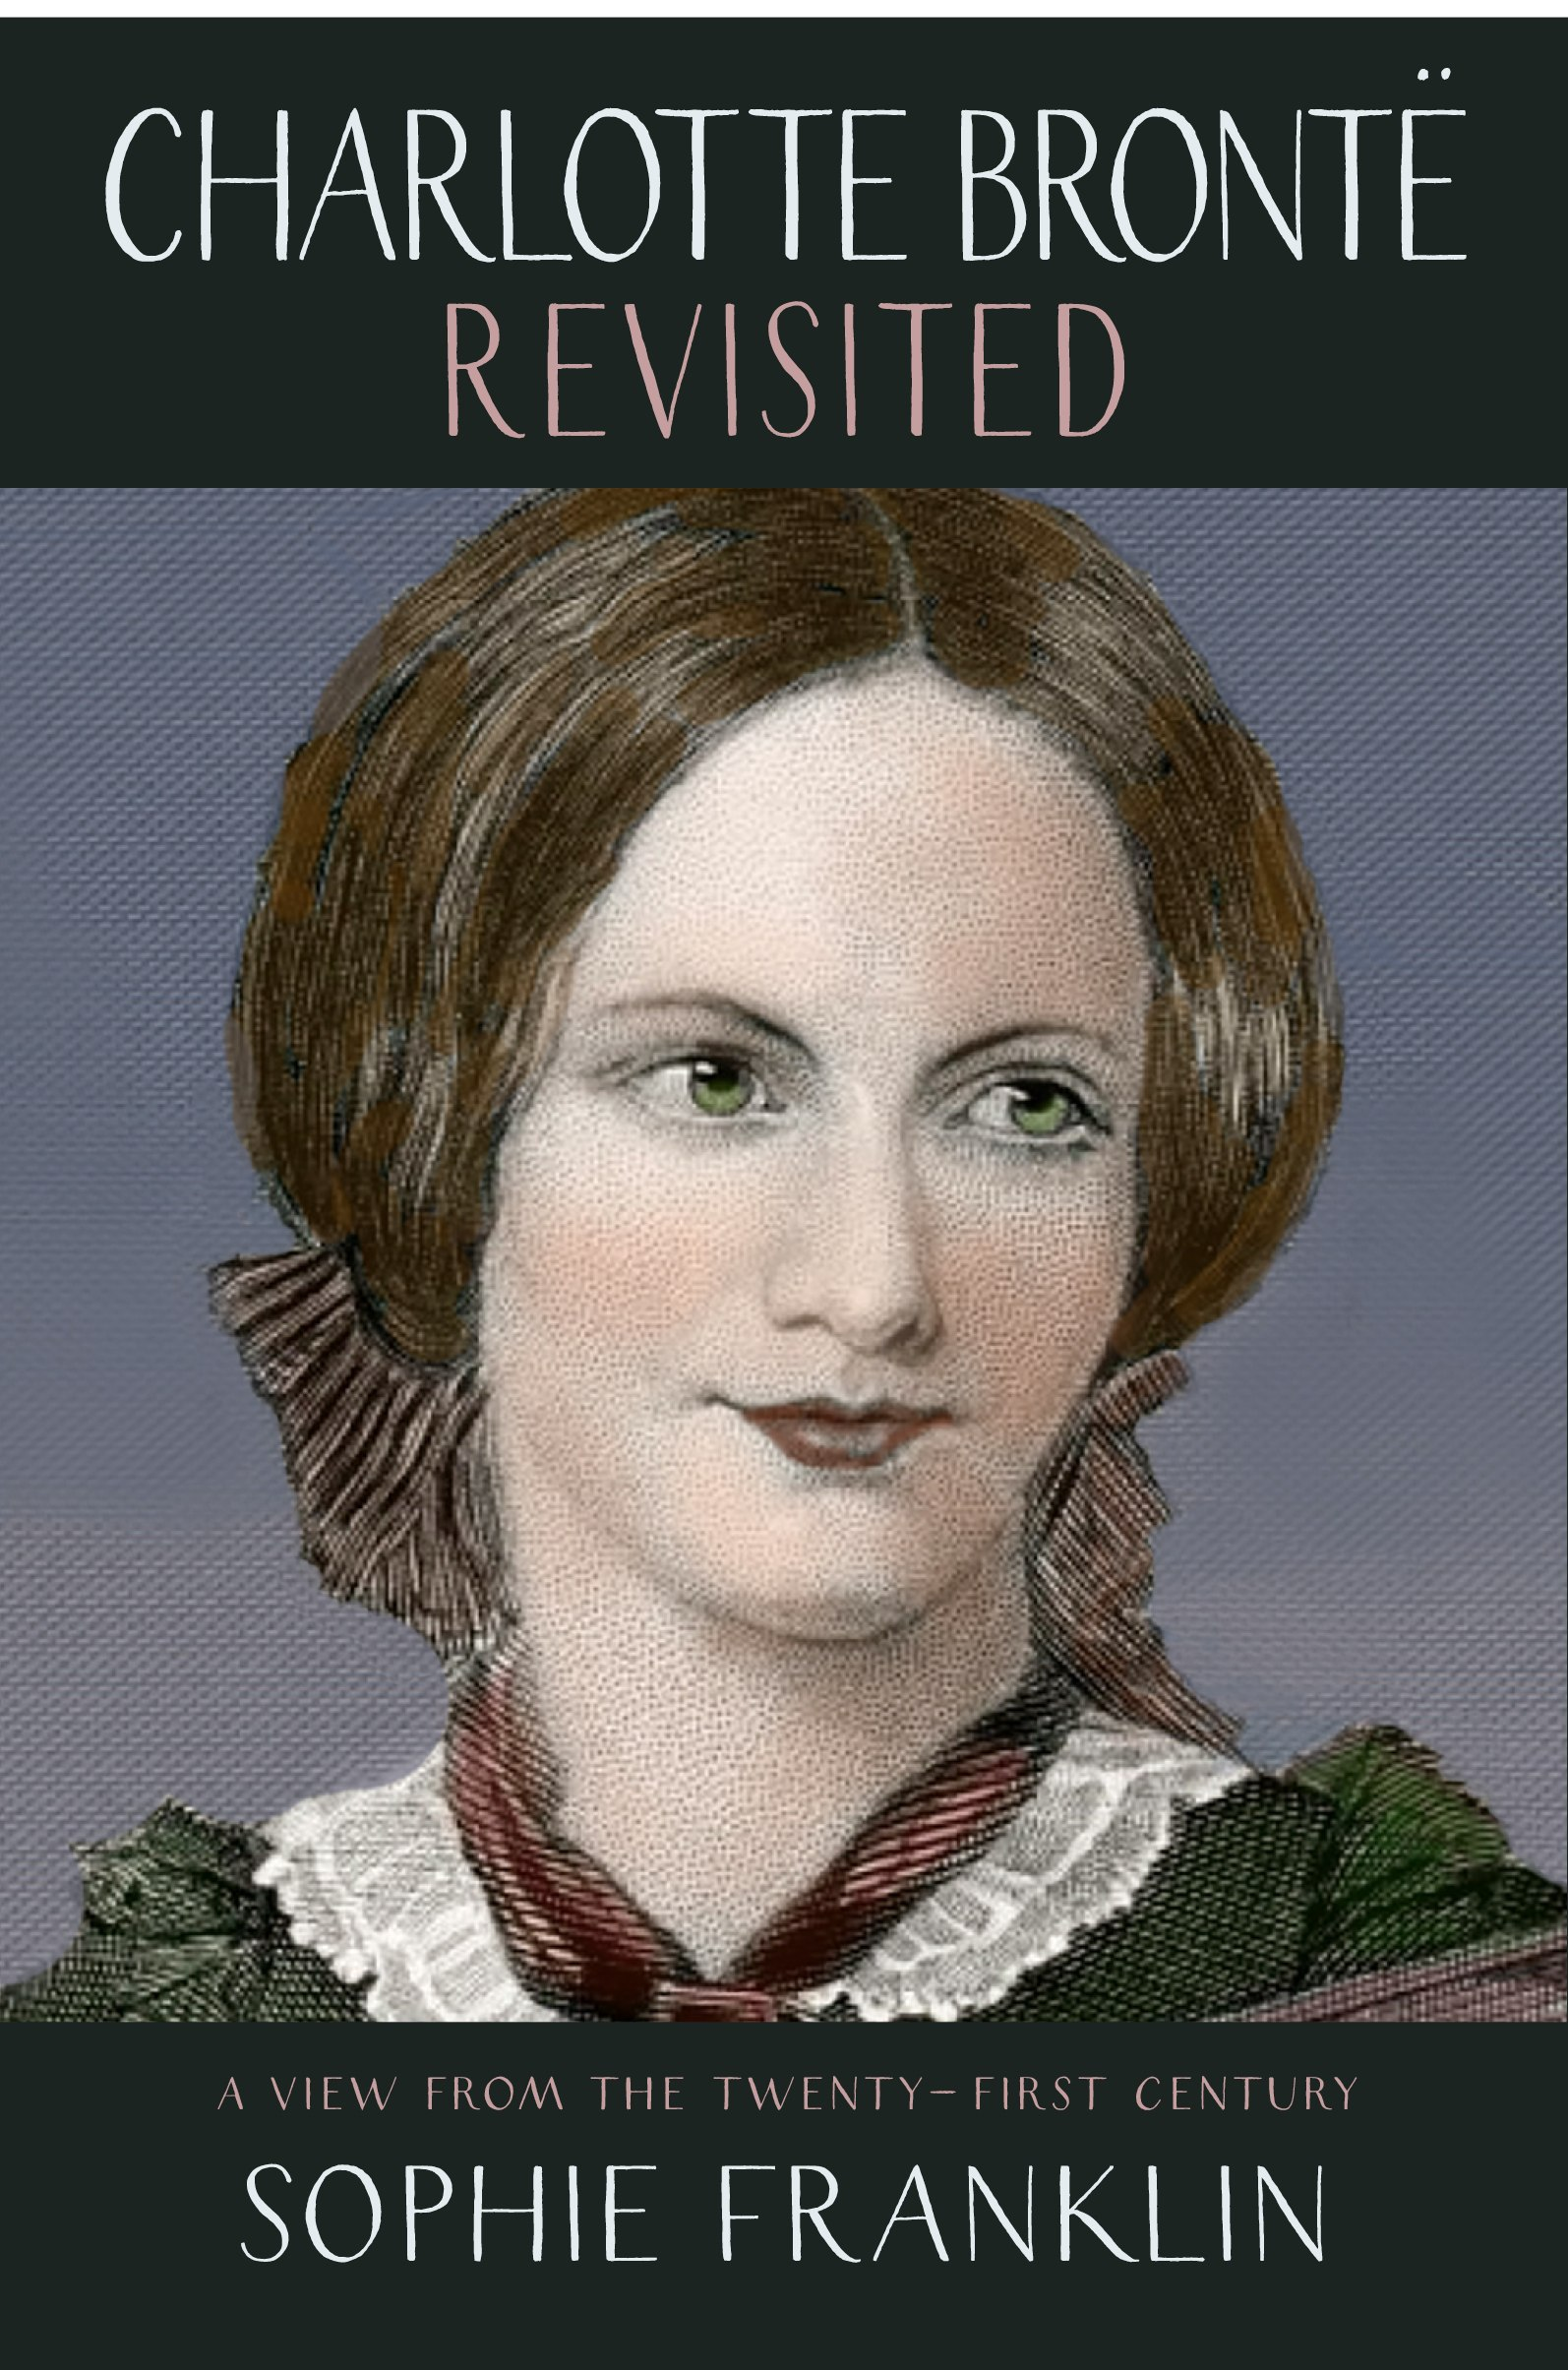 Charlotte Brontë Revisited